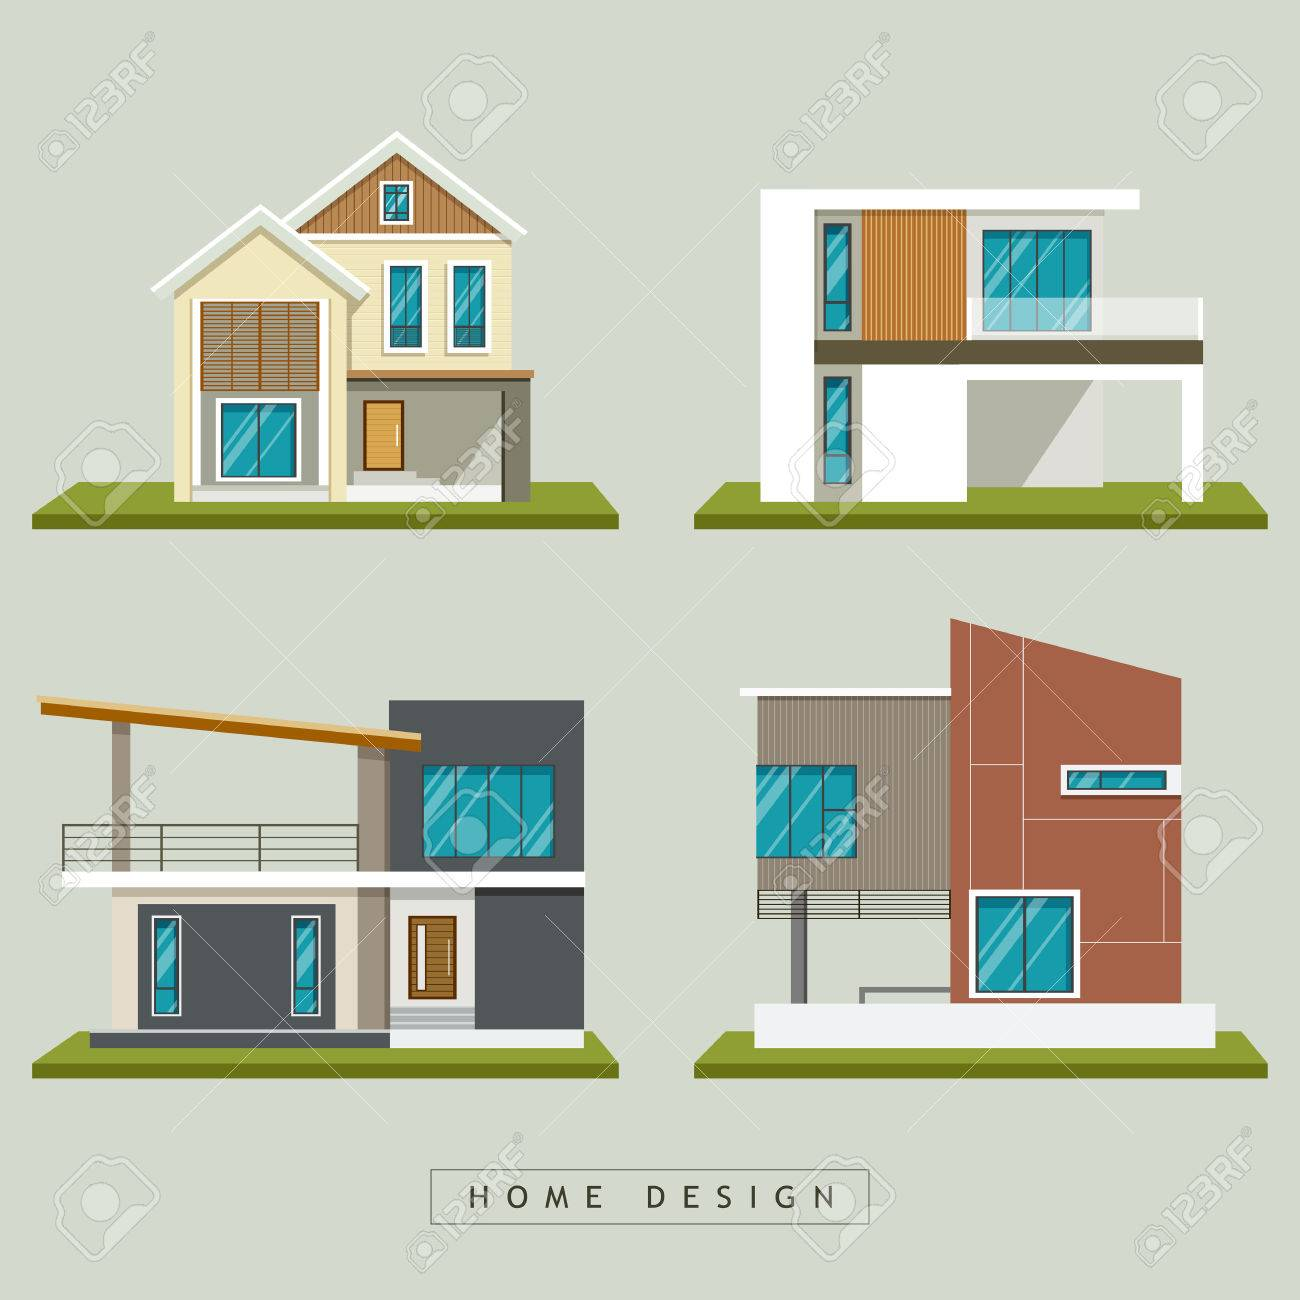 Home Exterior Design Collections, Vector Illustration Royalty Free ...